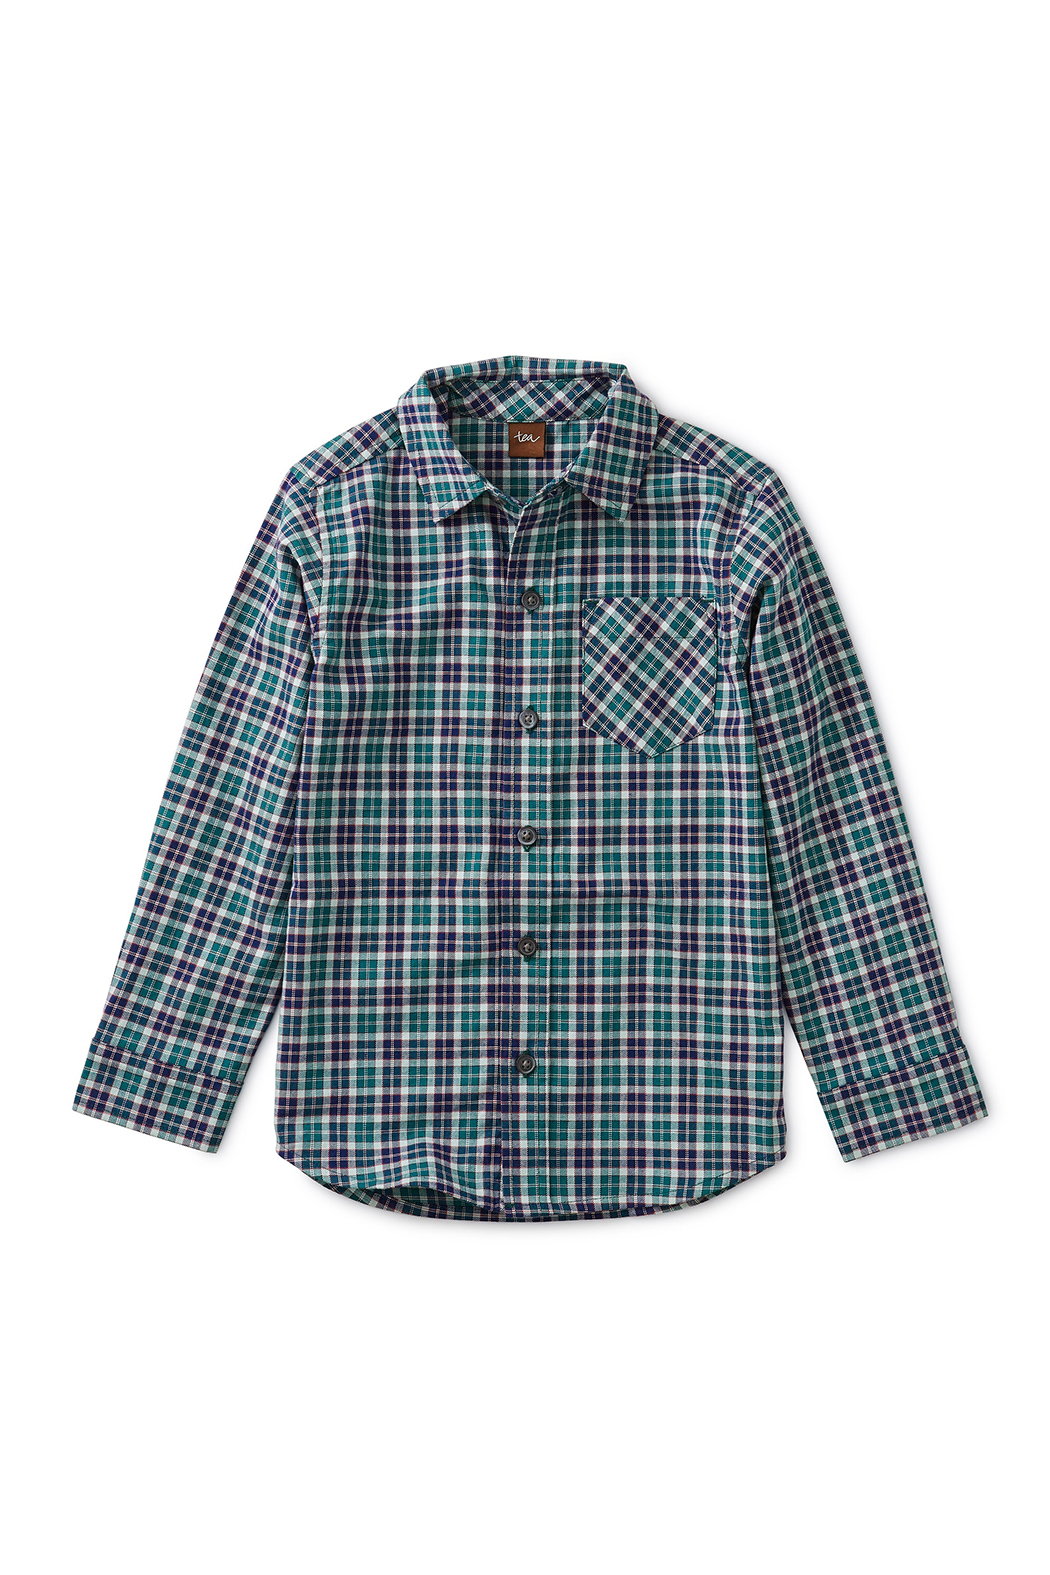 Tea Collection Patterned Button Up Shirt - Main Image